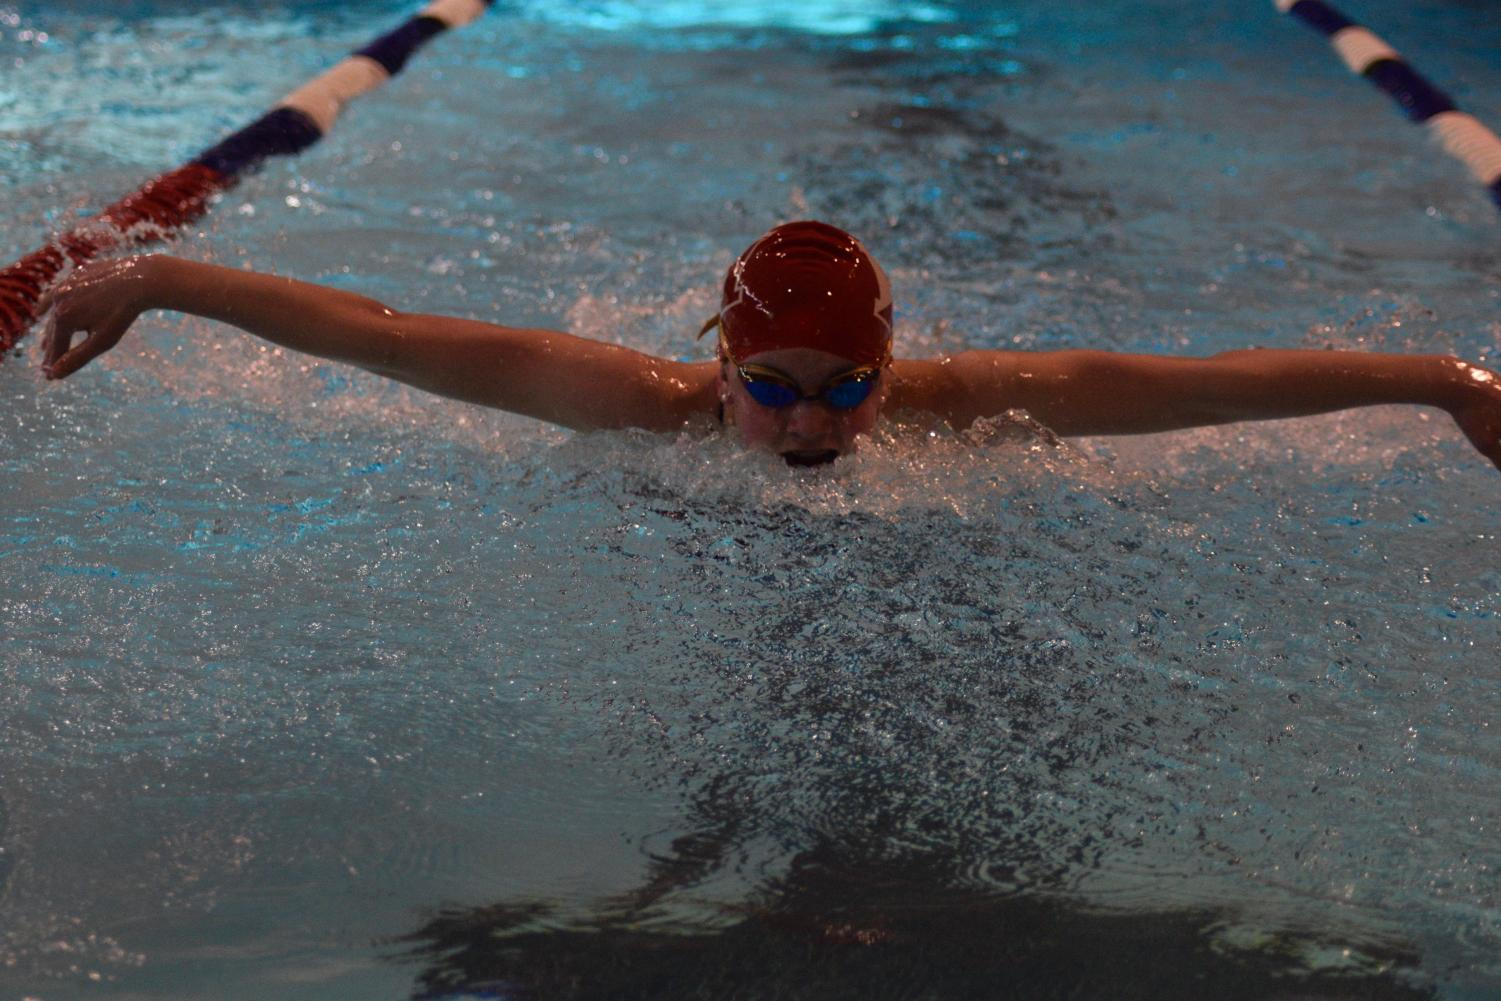 Freshman Ava Burnham had a very successful Patriot Leagues, coming in 2nd in the 100 back and 6th in the 100 butterflies.